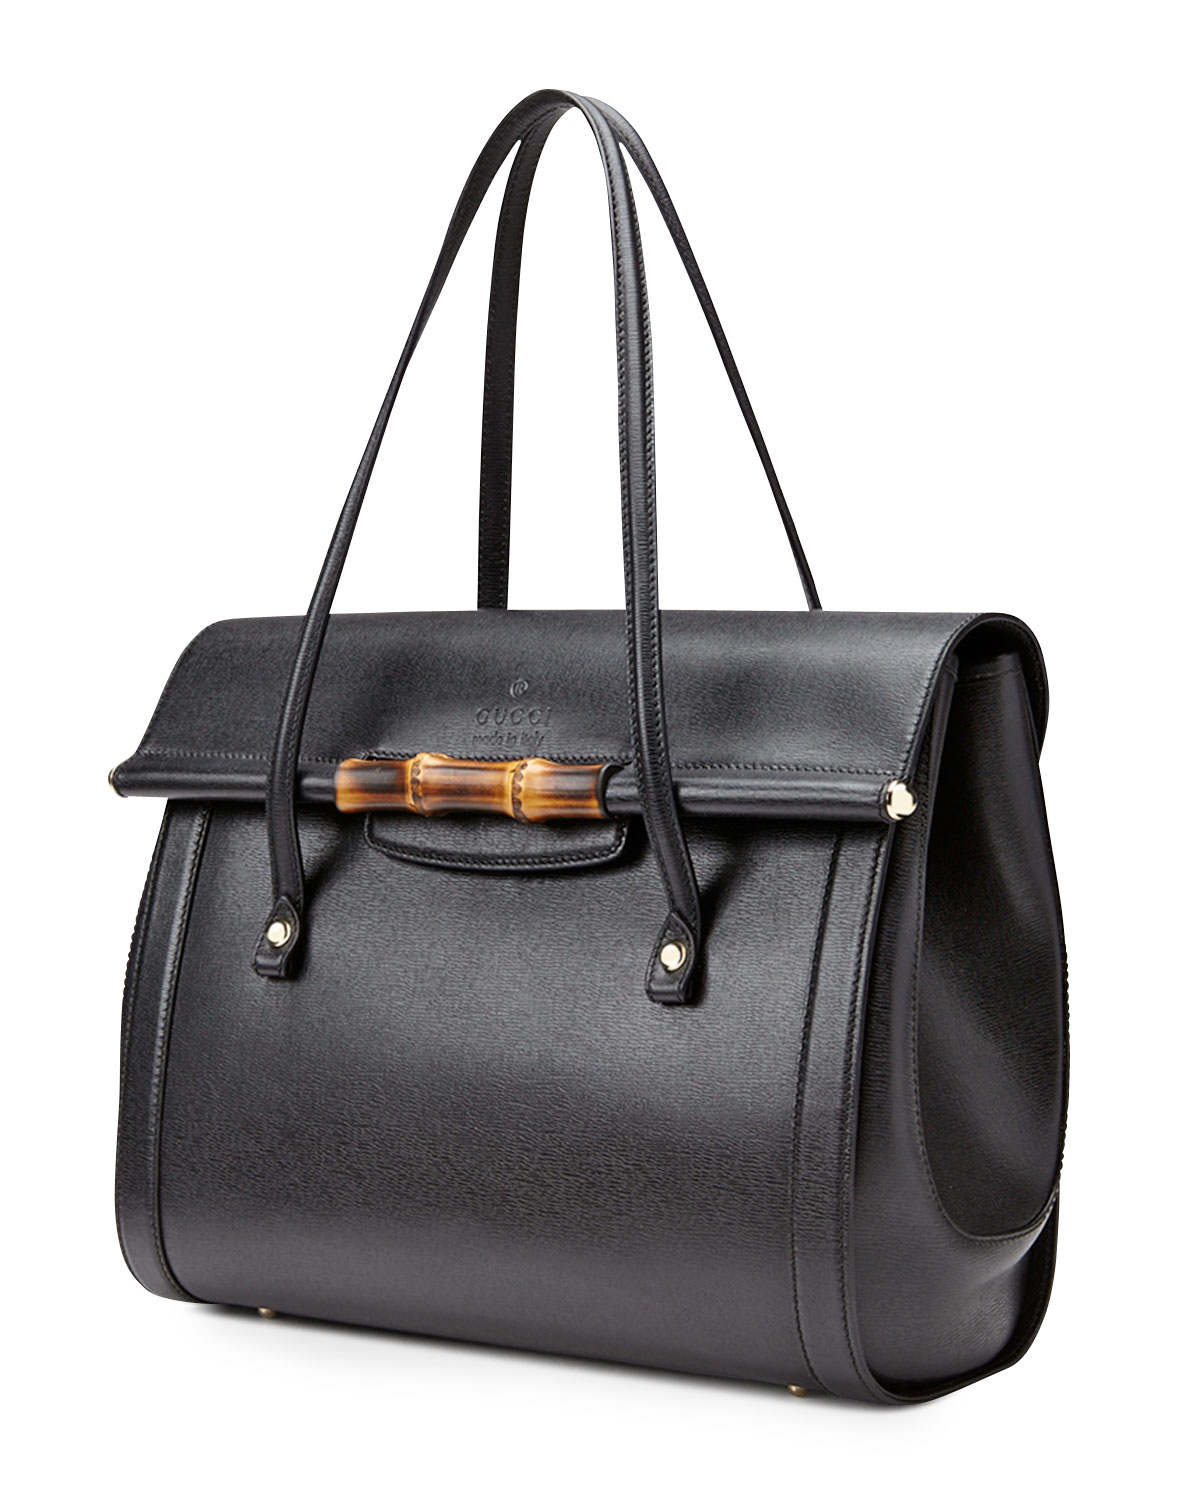 b869ba66a8 Gucci New Bullet Large Leather Top Handle Bag in Black - Lyst